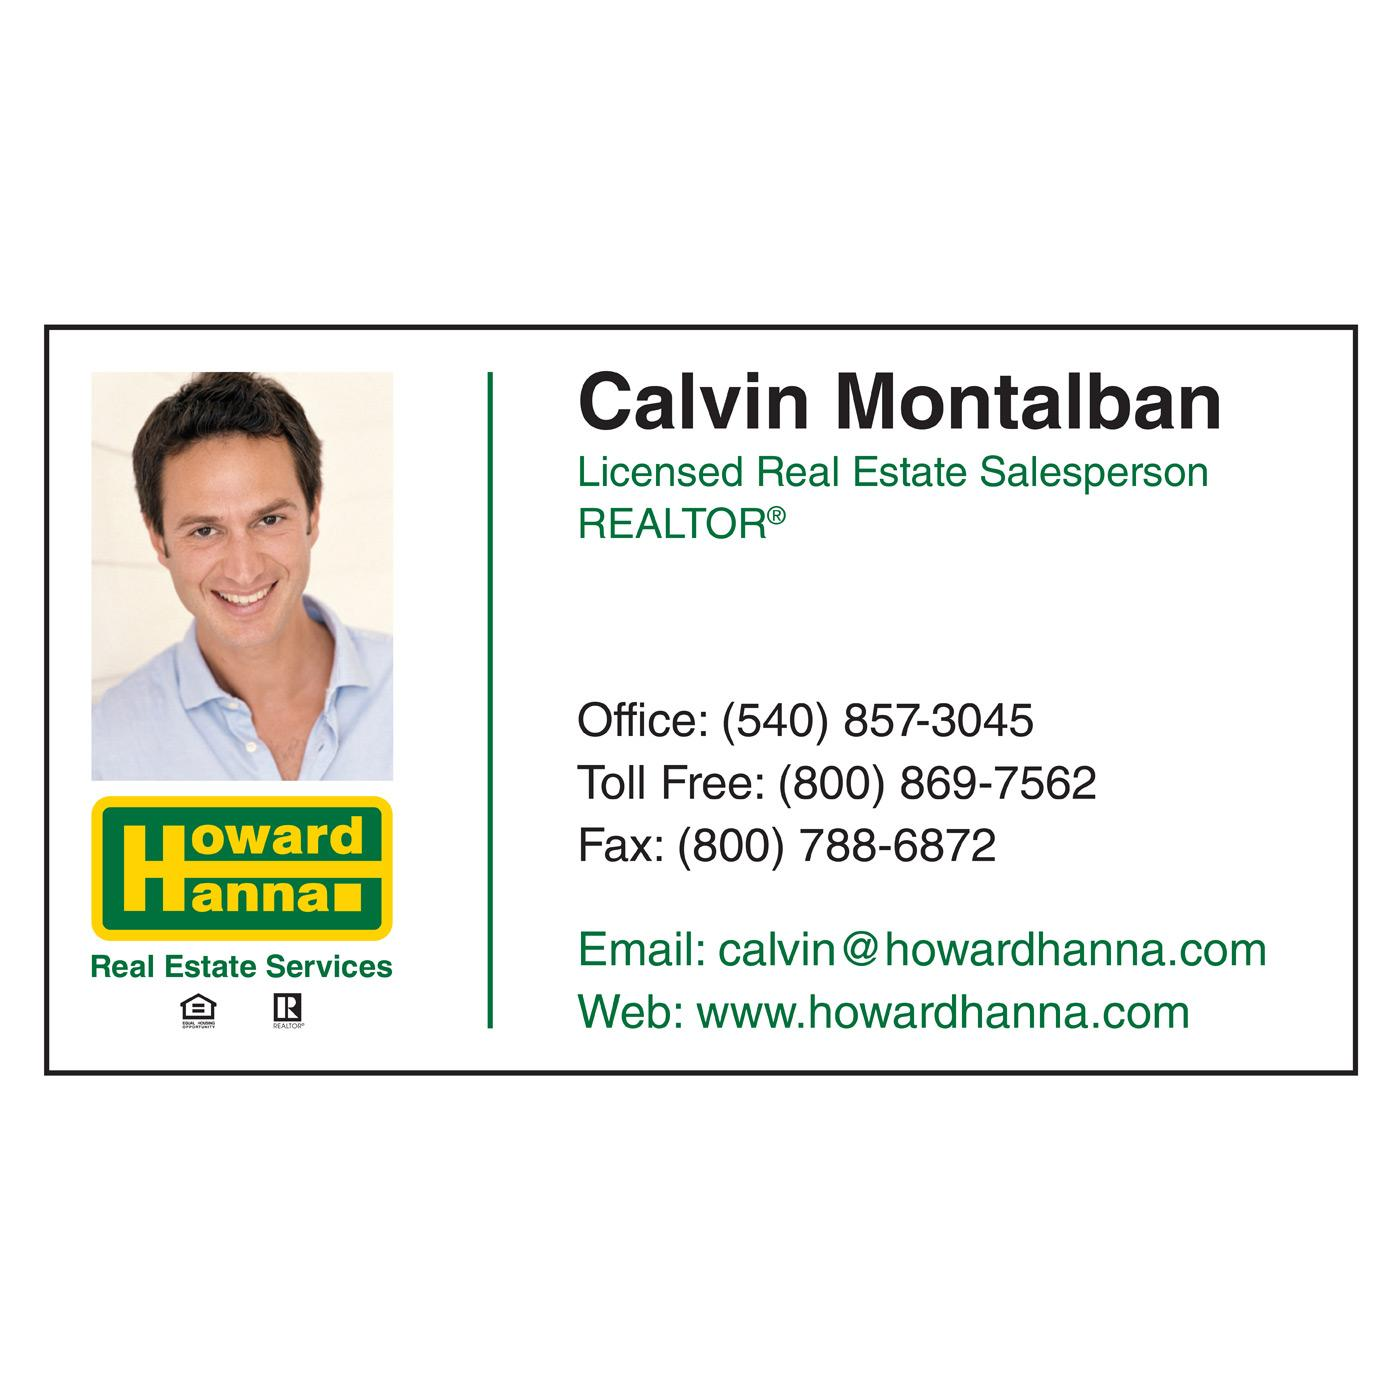 Howard Hanna Paper Business Card